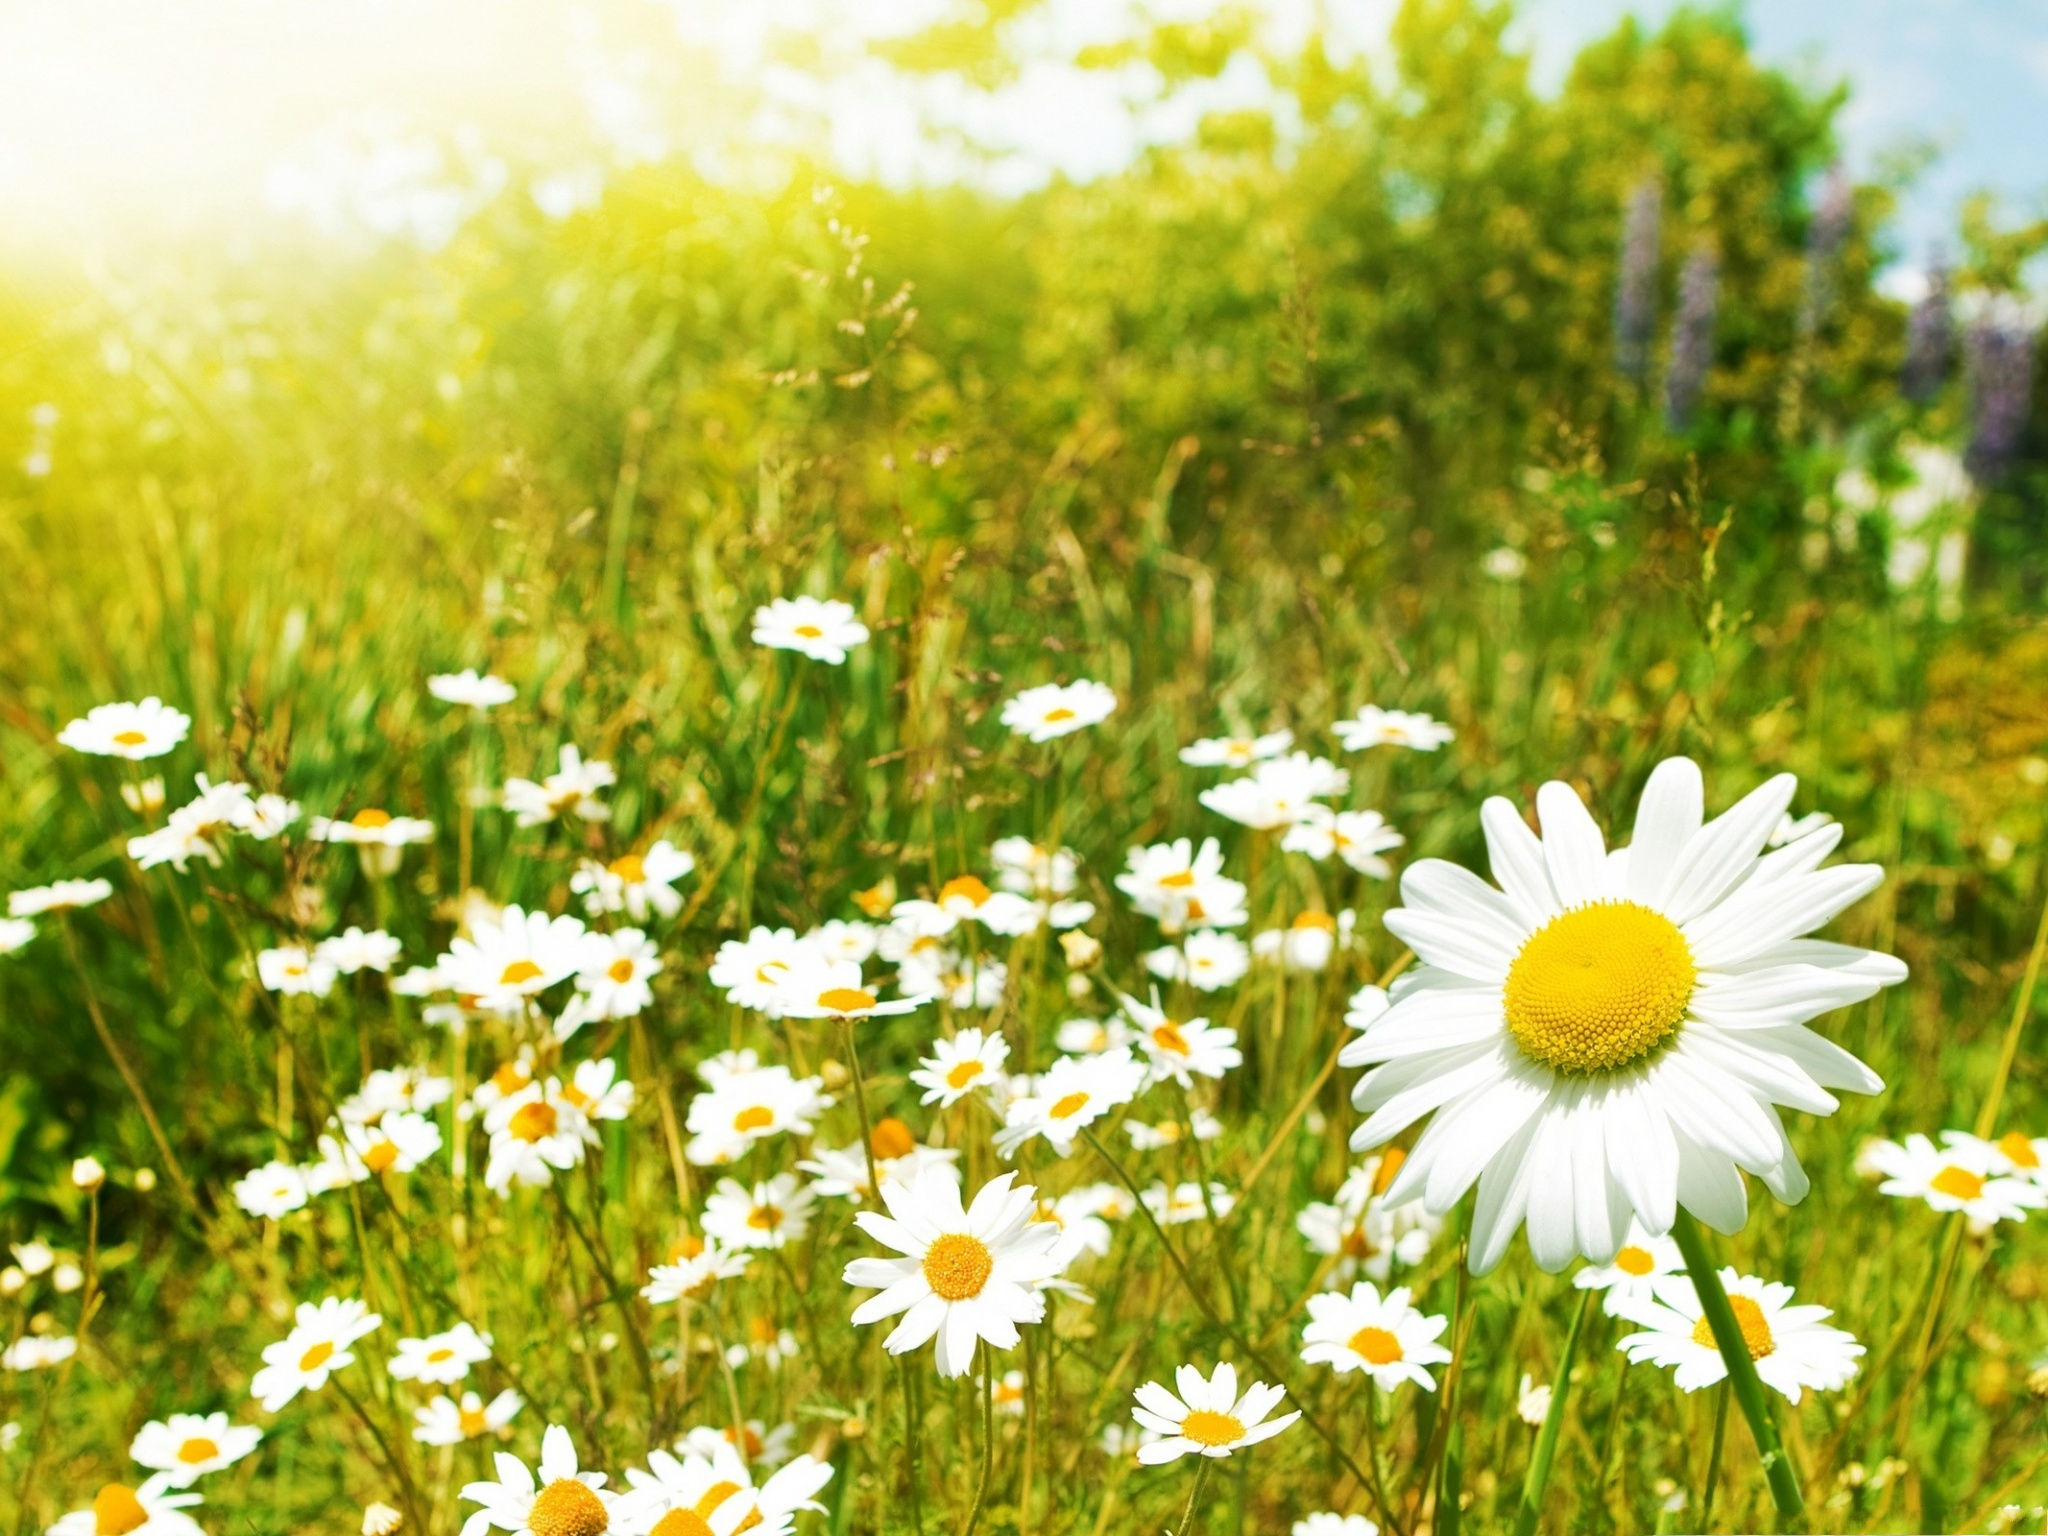 click to free download the wallpaper--Wild Flowers Pic, Small White Flowers Among Green Grass, Sunshine Pouring on  2048X1536 free wallpaper download